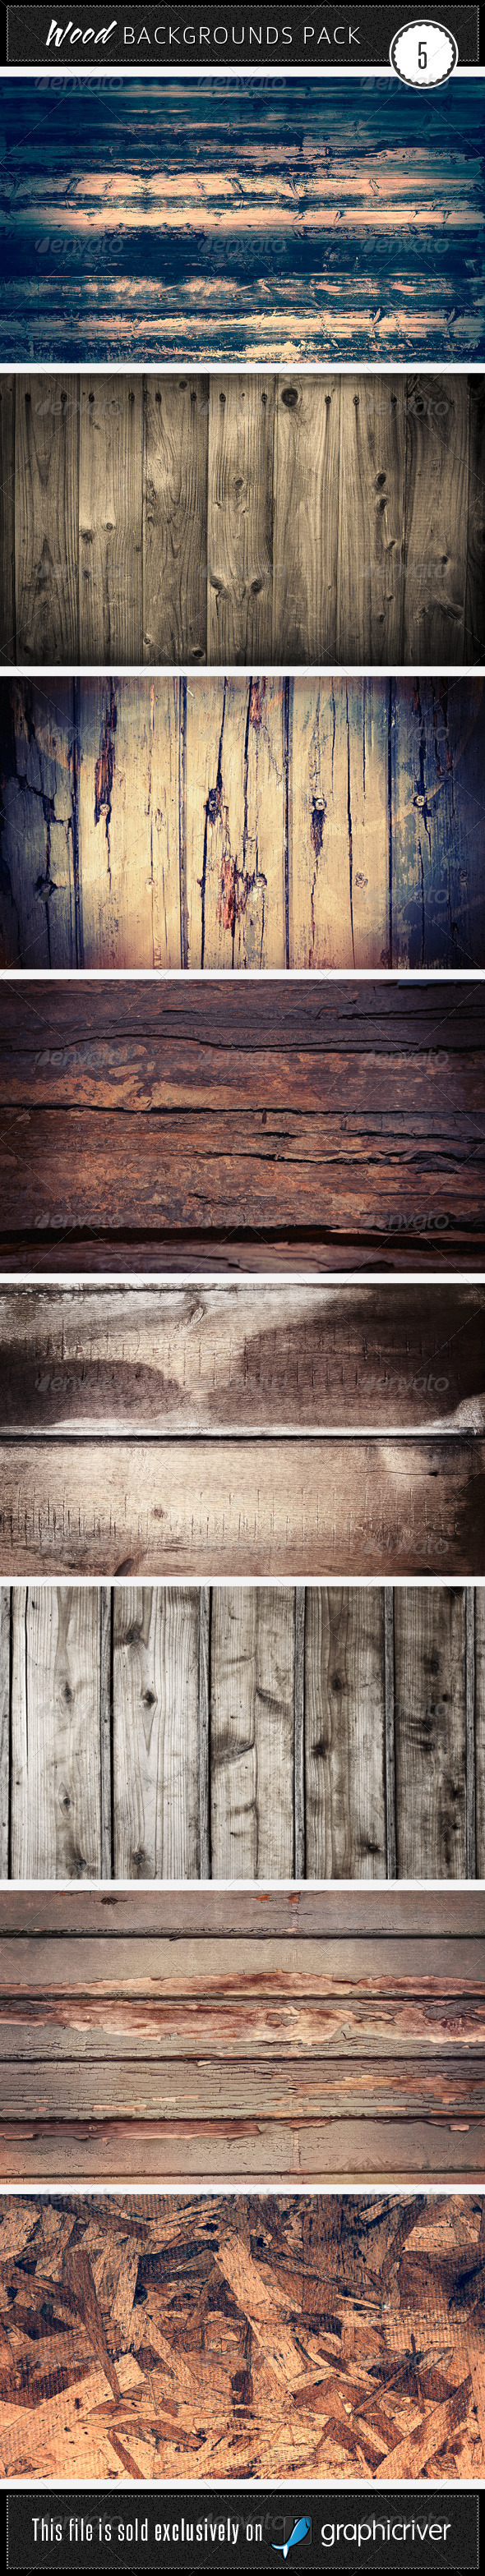 Wood Backgrounds Pack 5 - Wood Textures